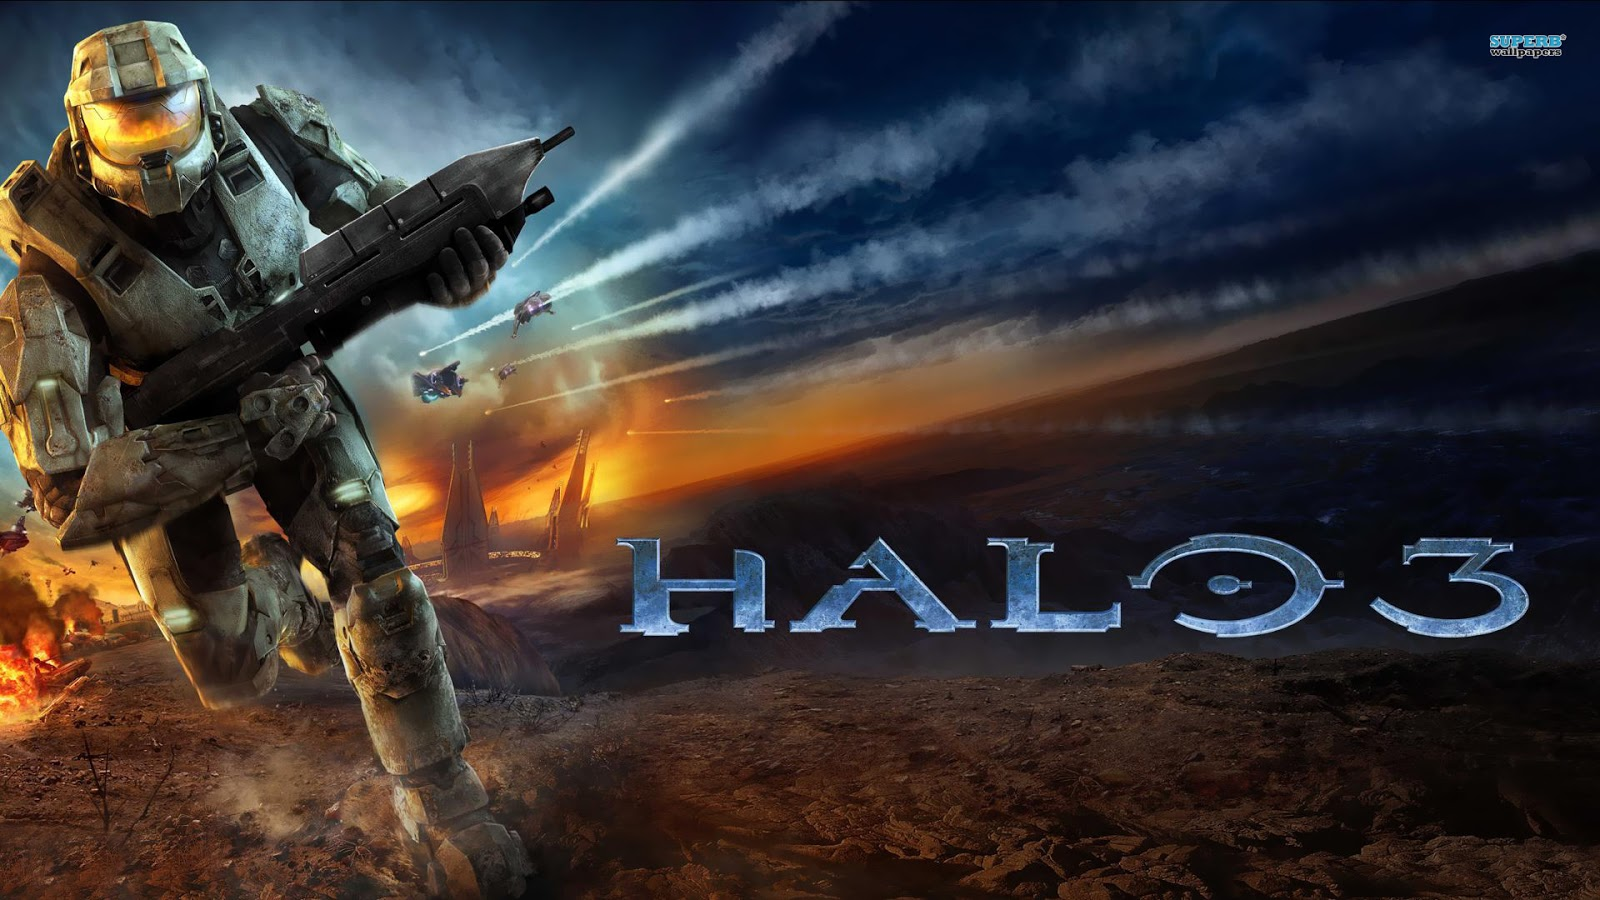 MCC Halo Wallpaper HD - Pics about space